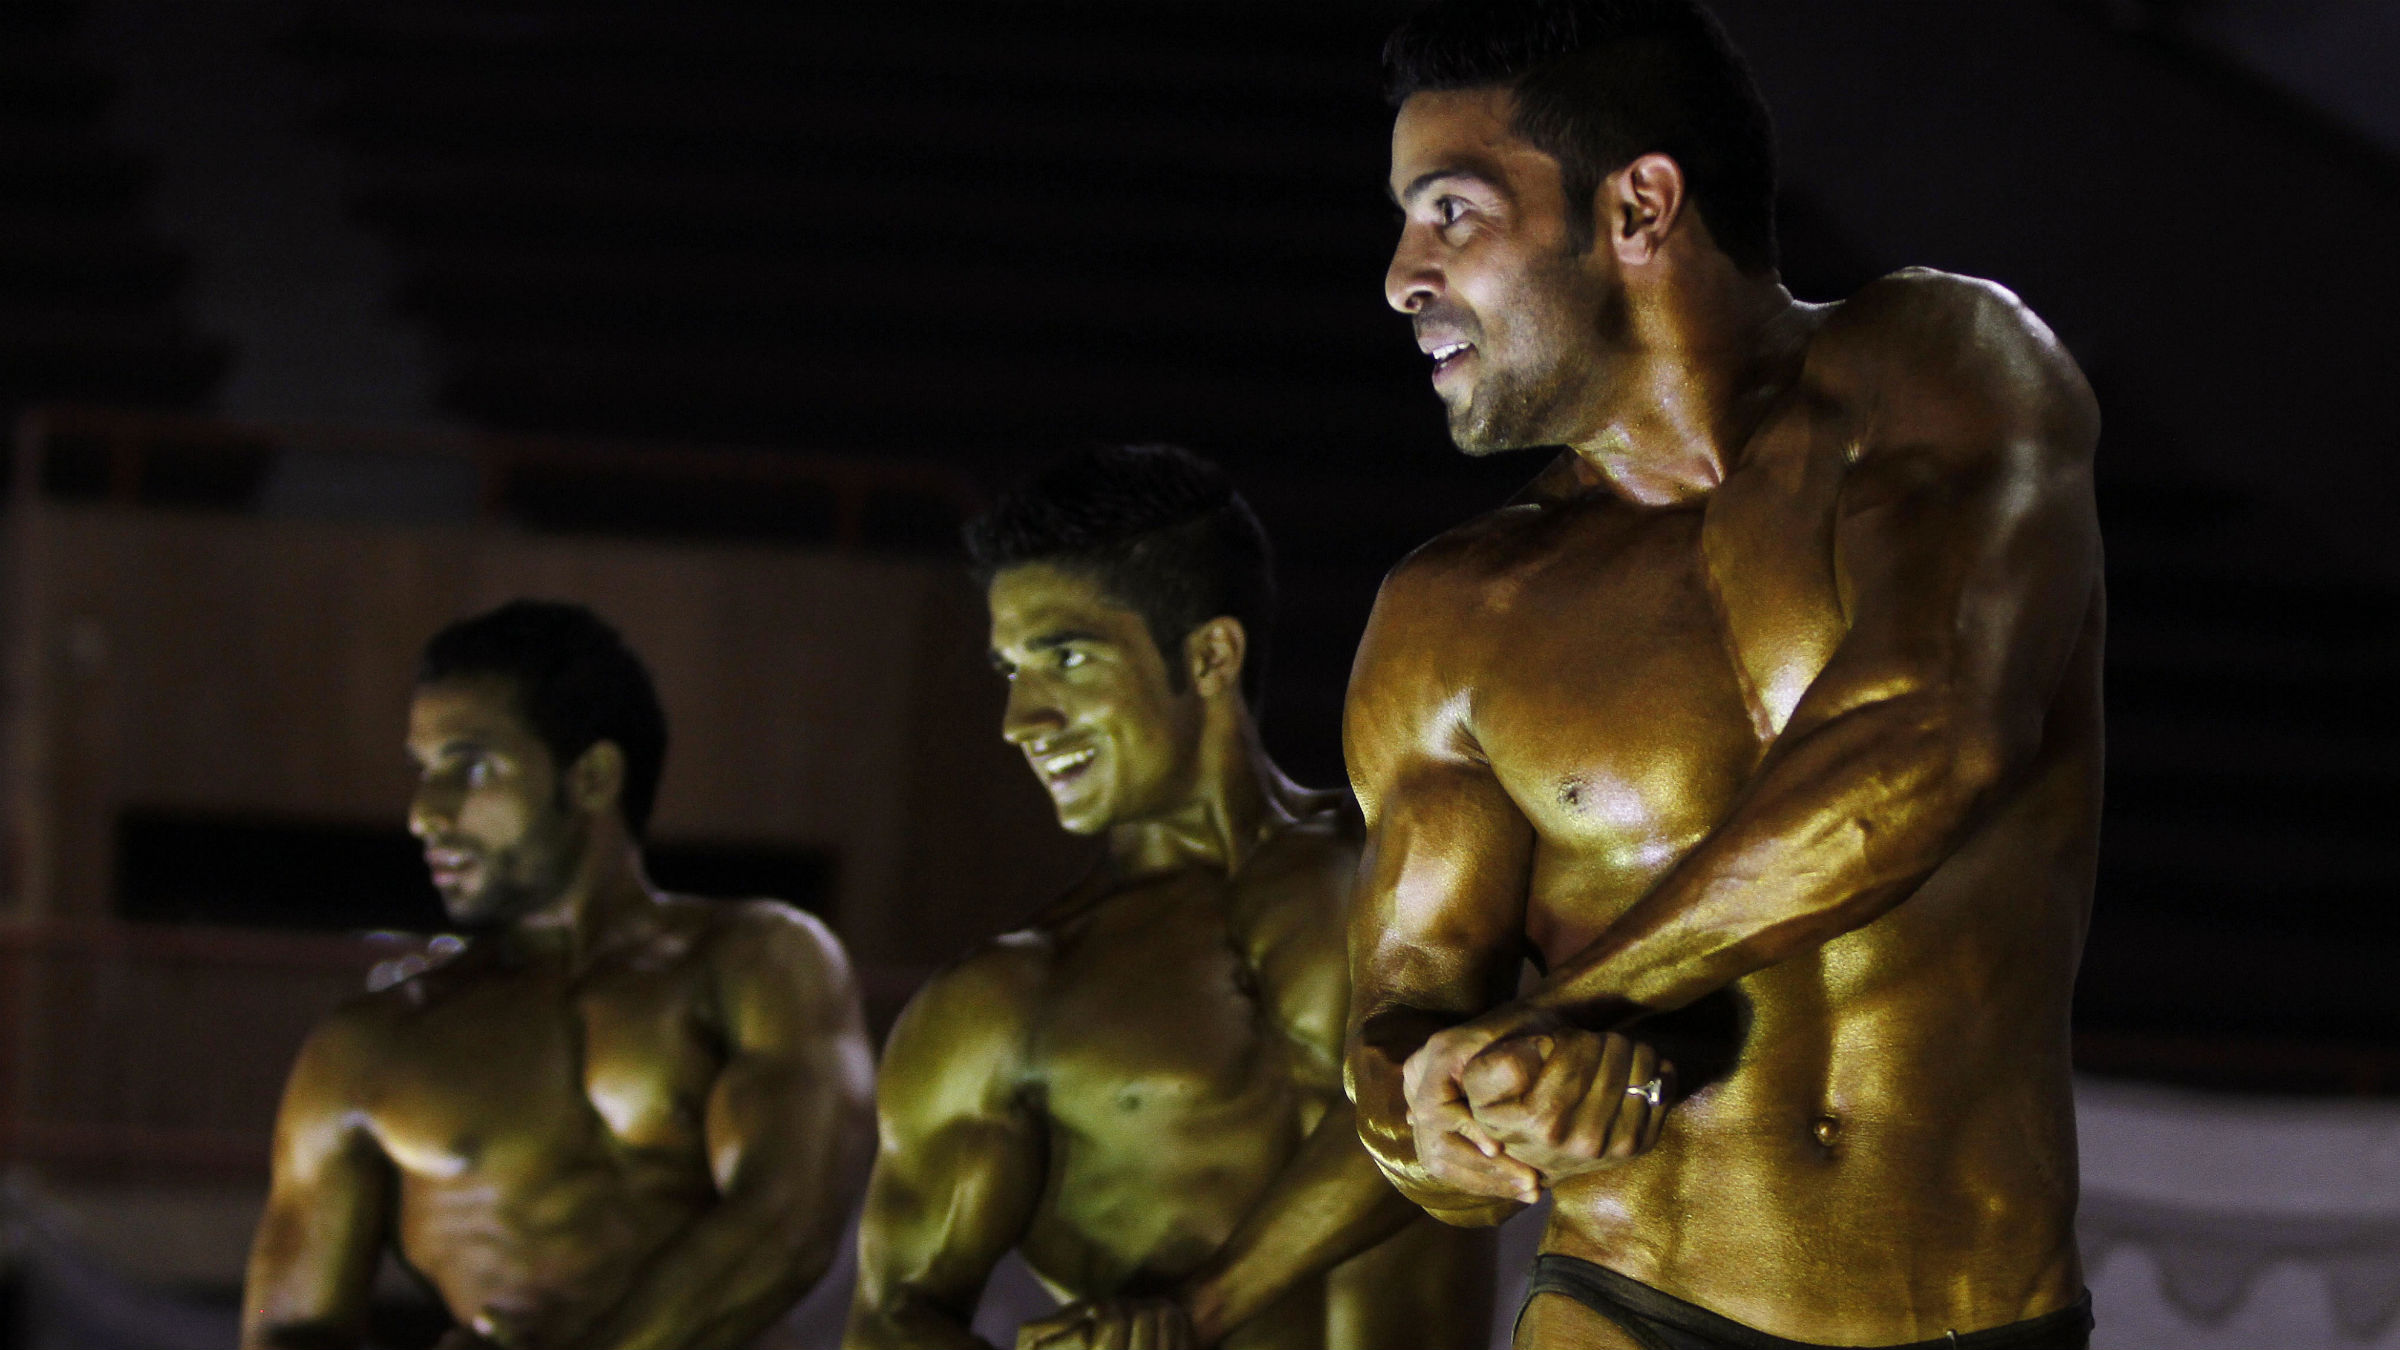 Body building competition